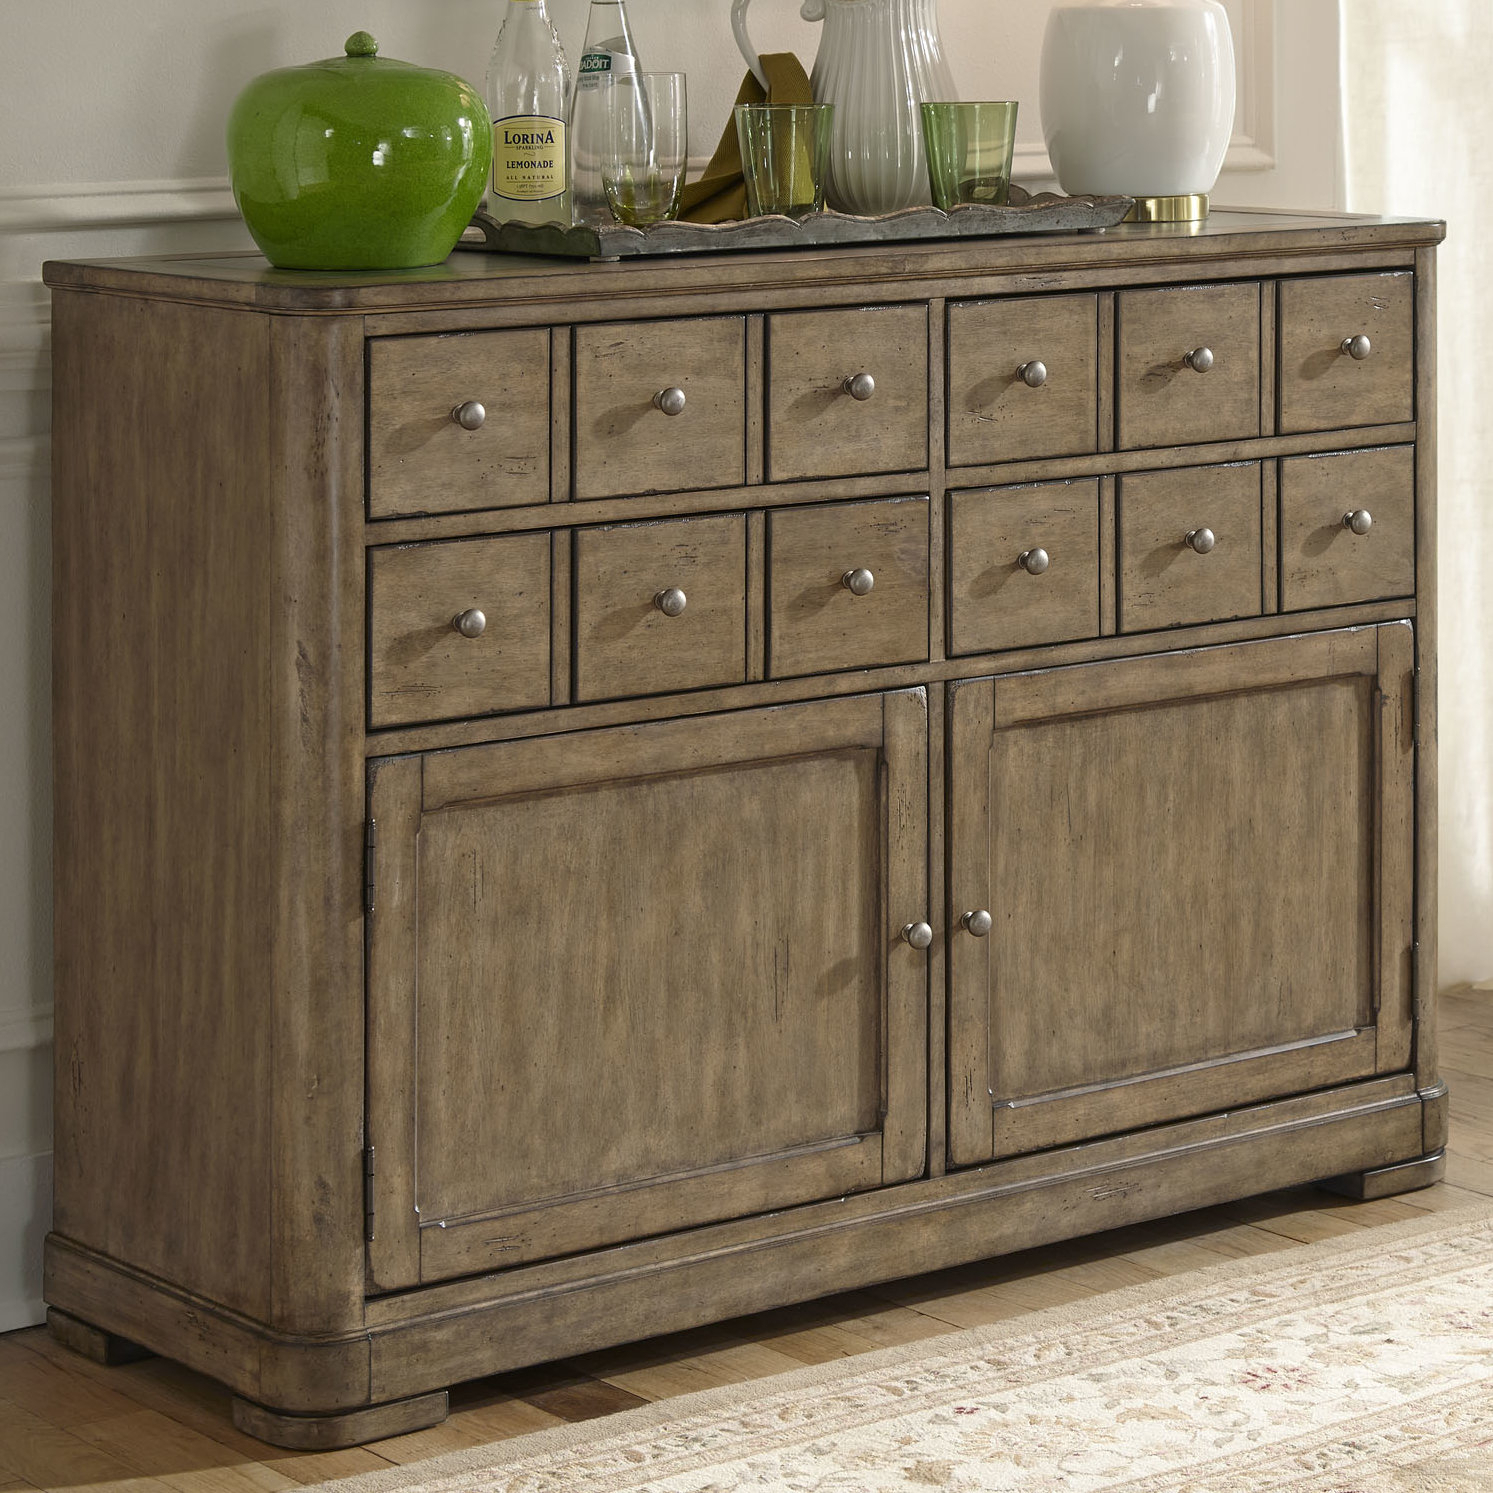 Kennemer Sideboard Intended For Most Up To Date Tavant Sideboards (#8 of 20)